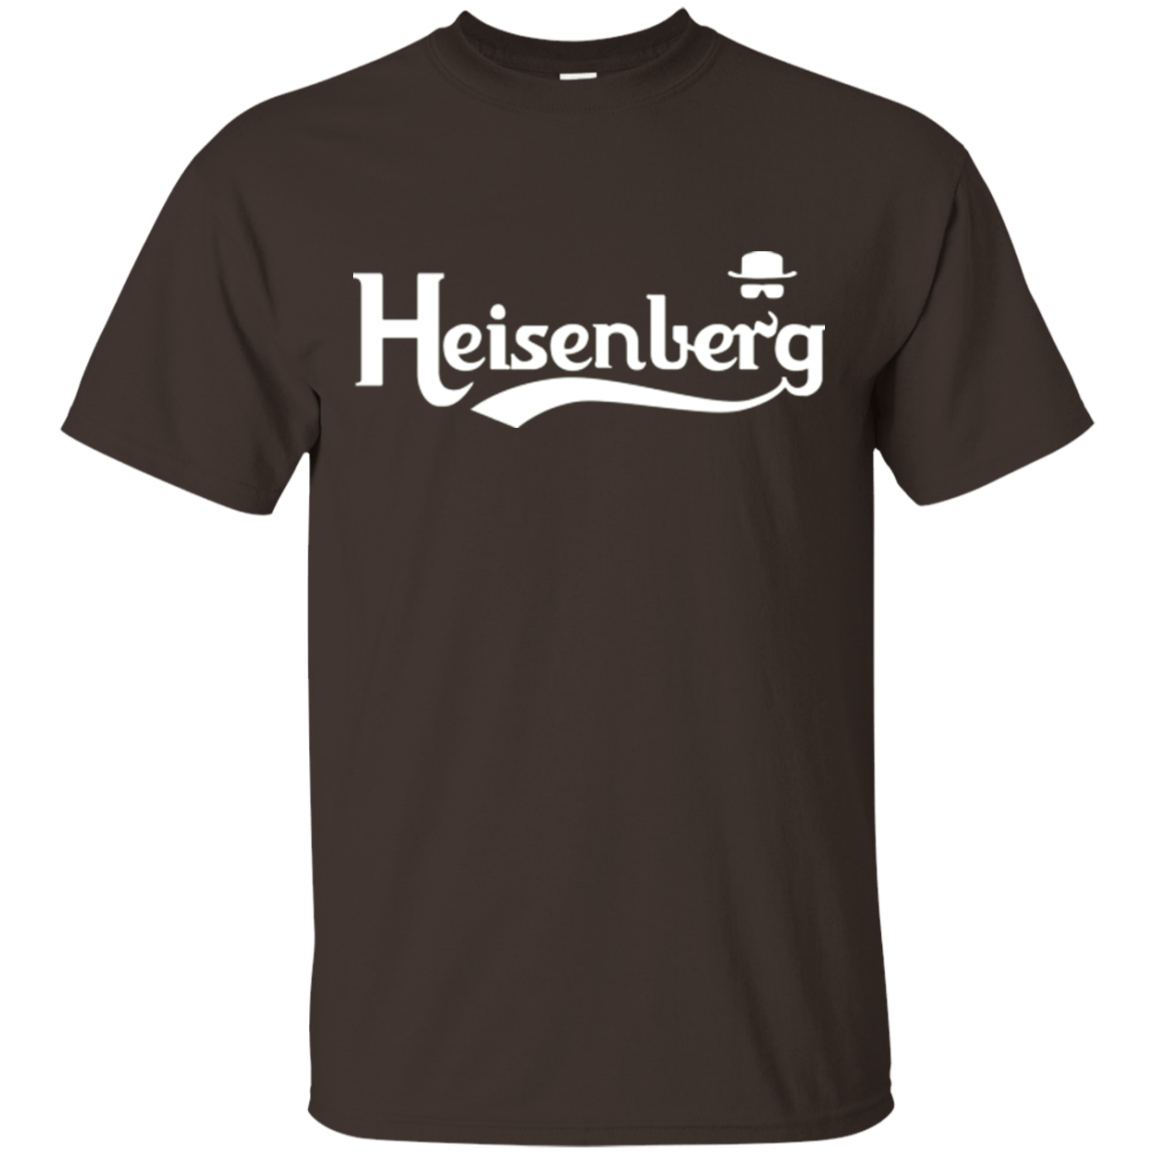 T-Shirts Dark Chocolate / Small Heisenberg (1) T-Shirt